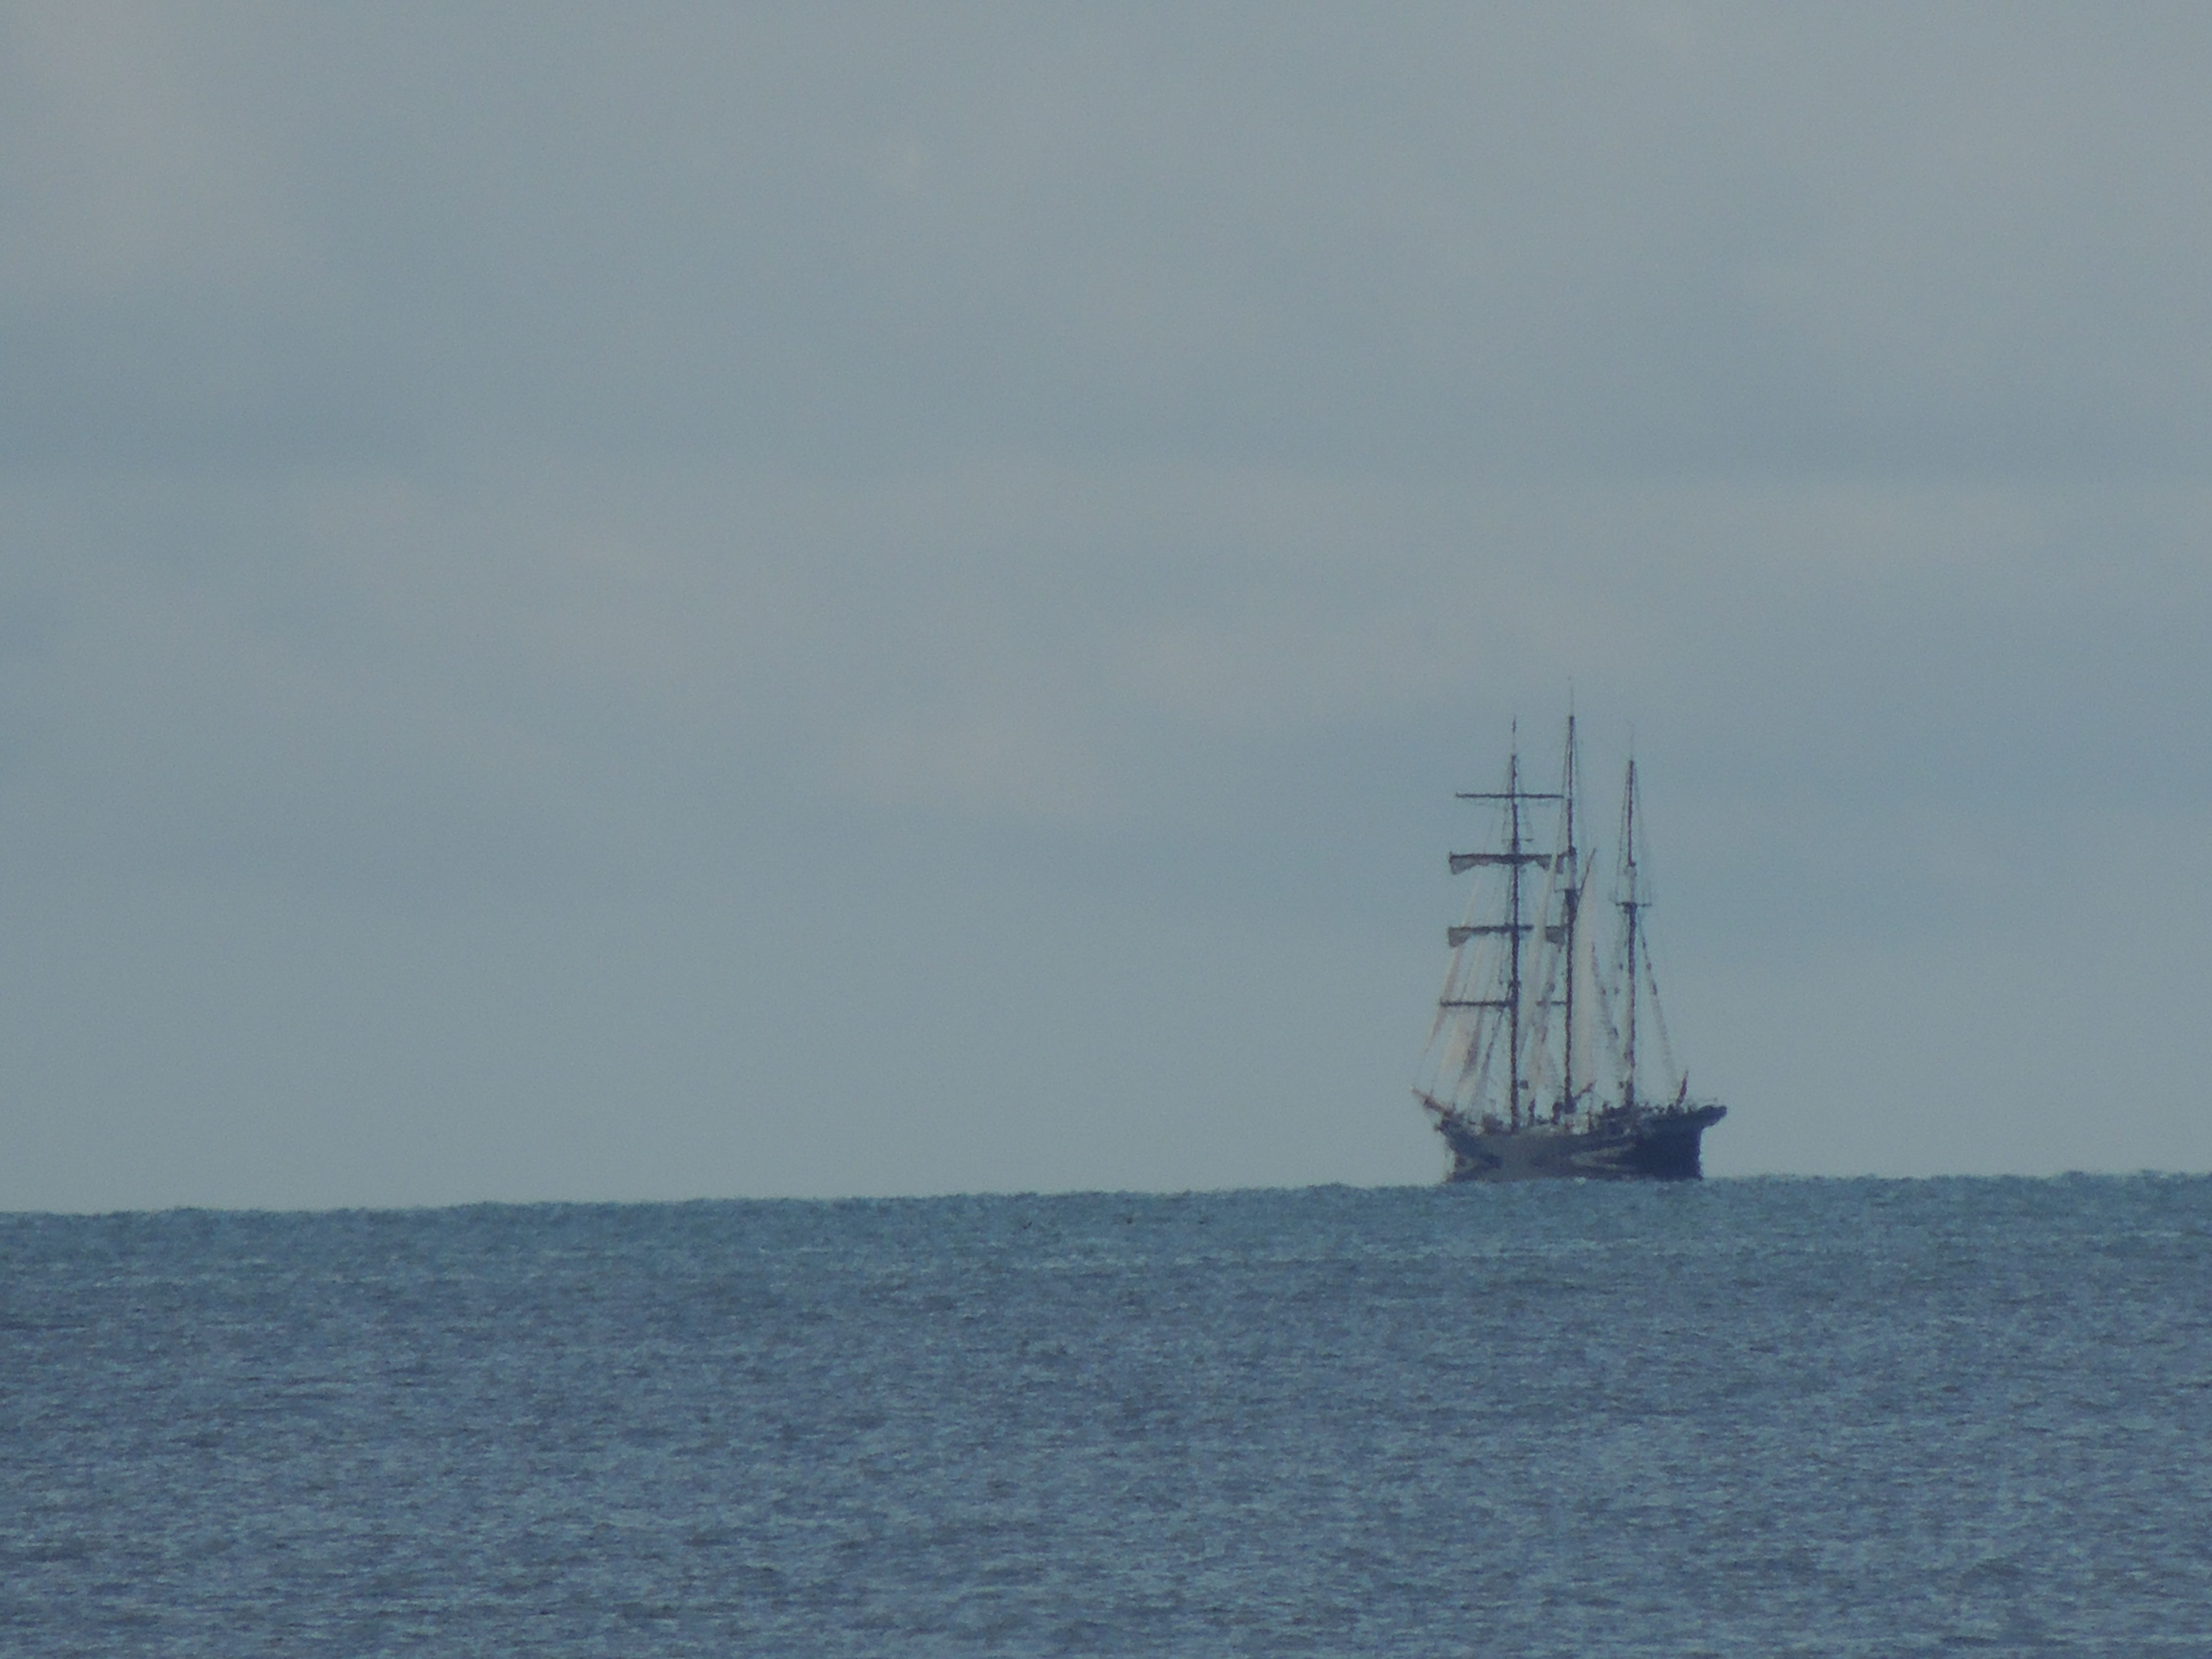 Sailing ship out on the harbour Taken from Wenderholm